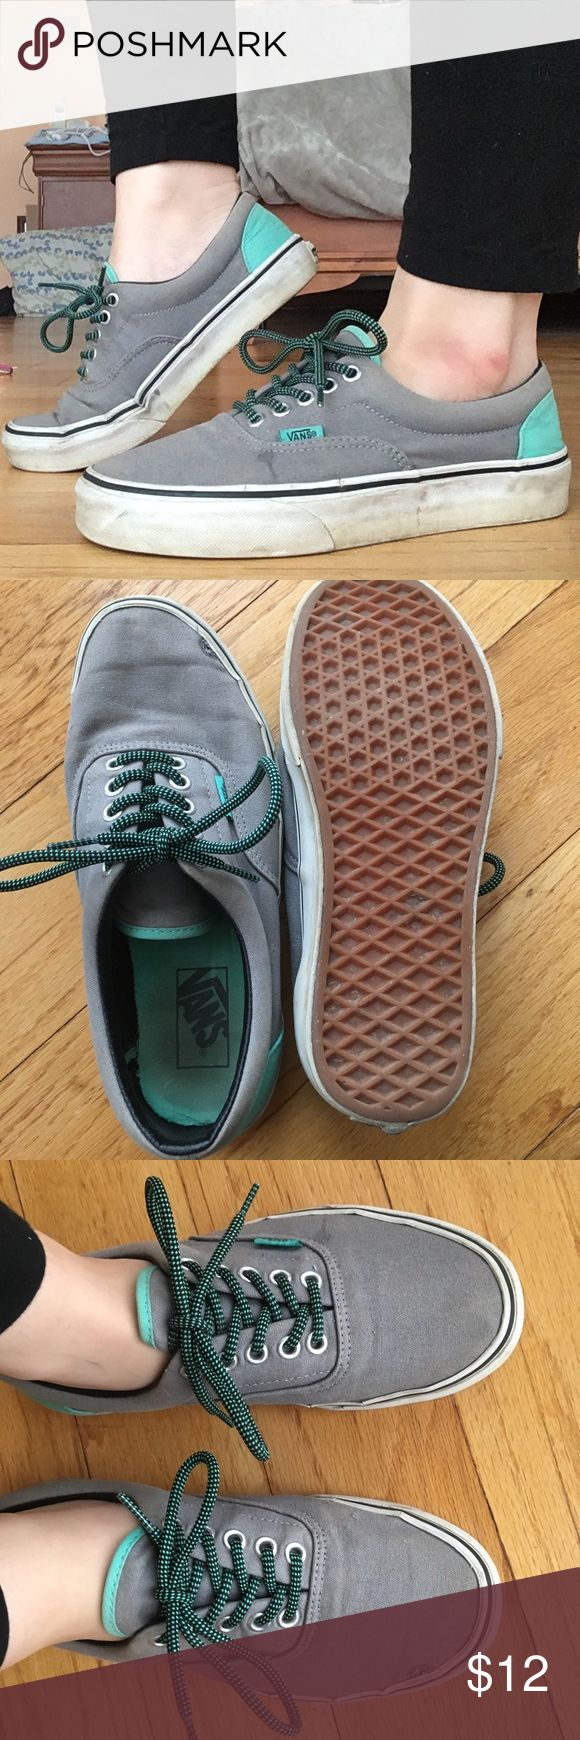 VANS Era Grey & Electric Green Canvas Skate Shoes Size: 6.5 men's, 8 women's  Brand: vans  Color: blue and teal  Condition: the top part of the soul is starting to separate a little bit and there's a small hole pictured at the front of the shoe. Other than that, pretty good condition :) Vans Shoes Sneakers